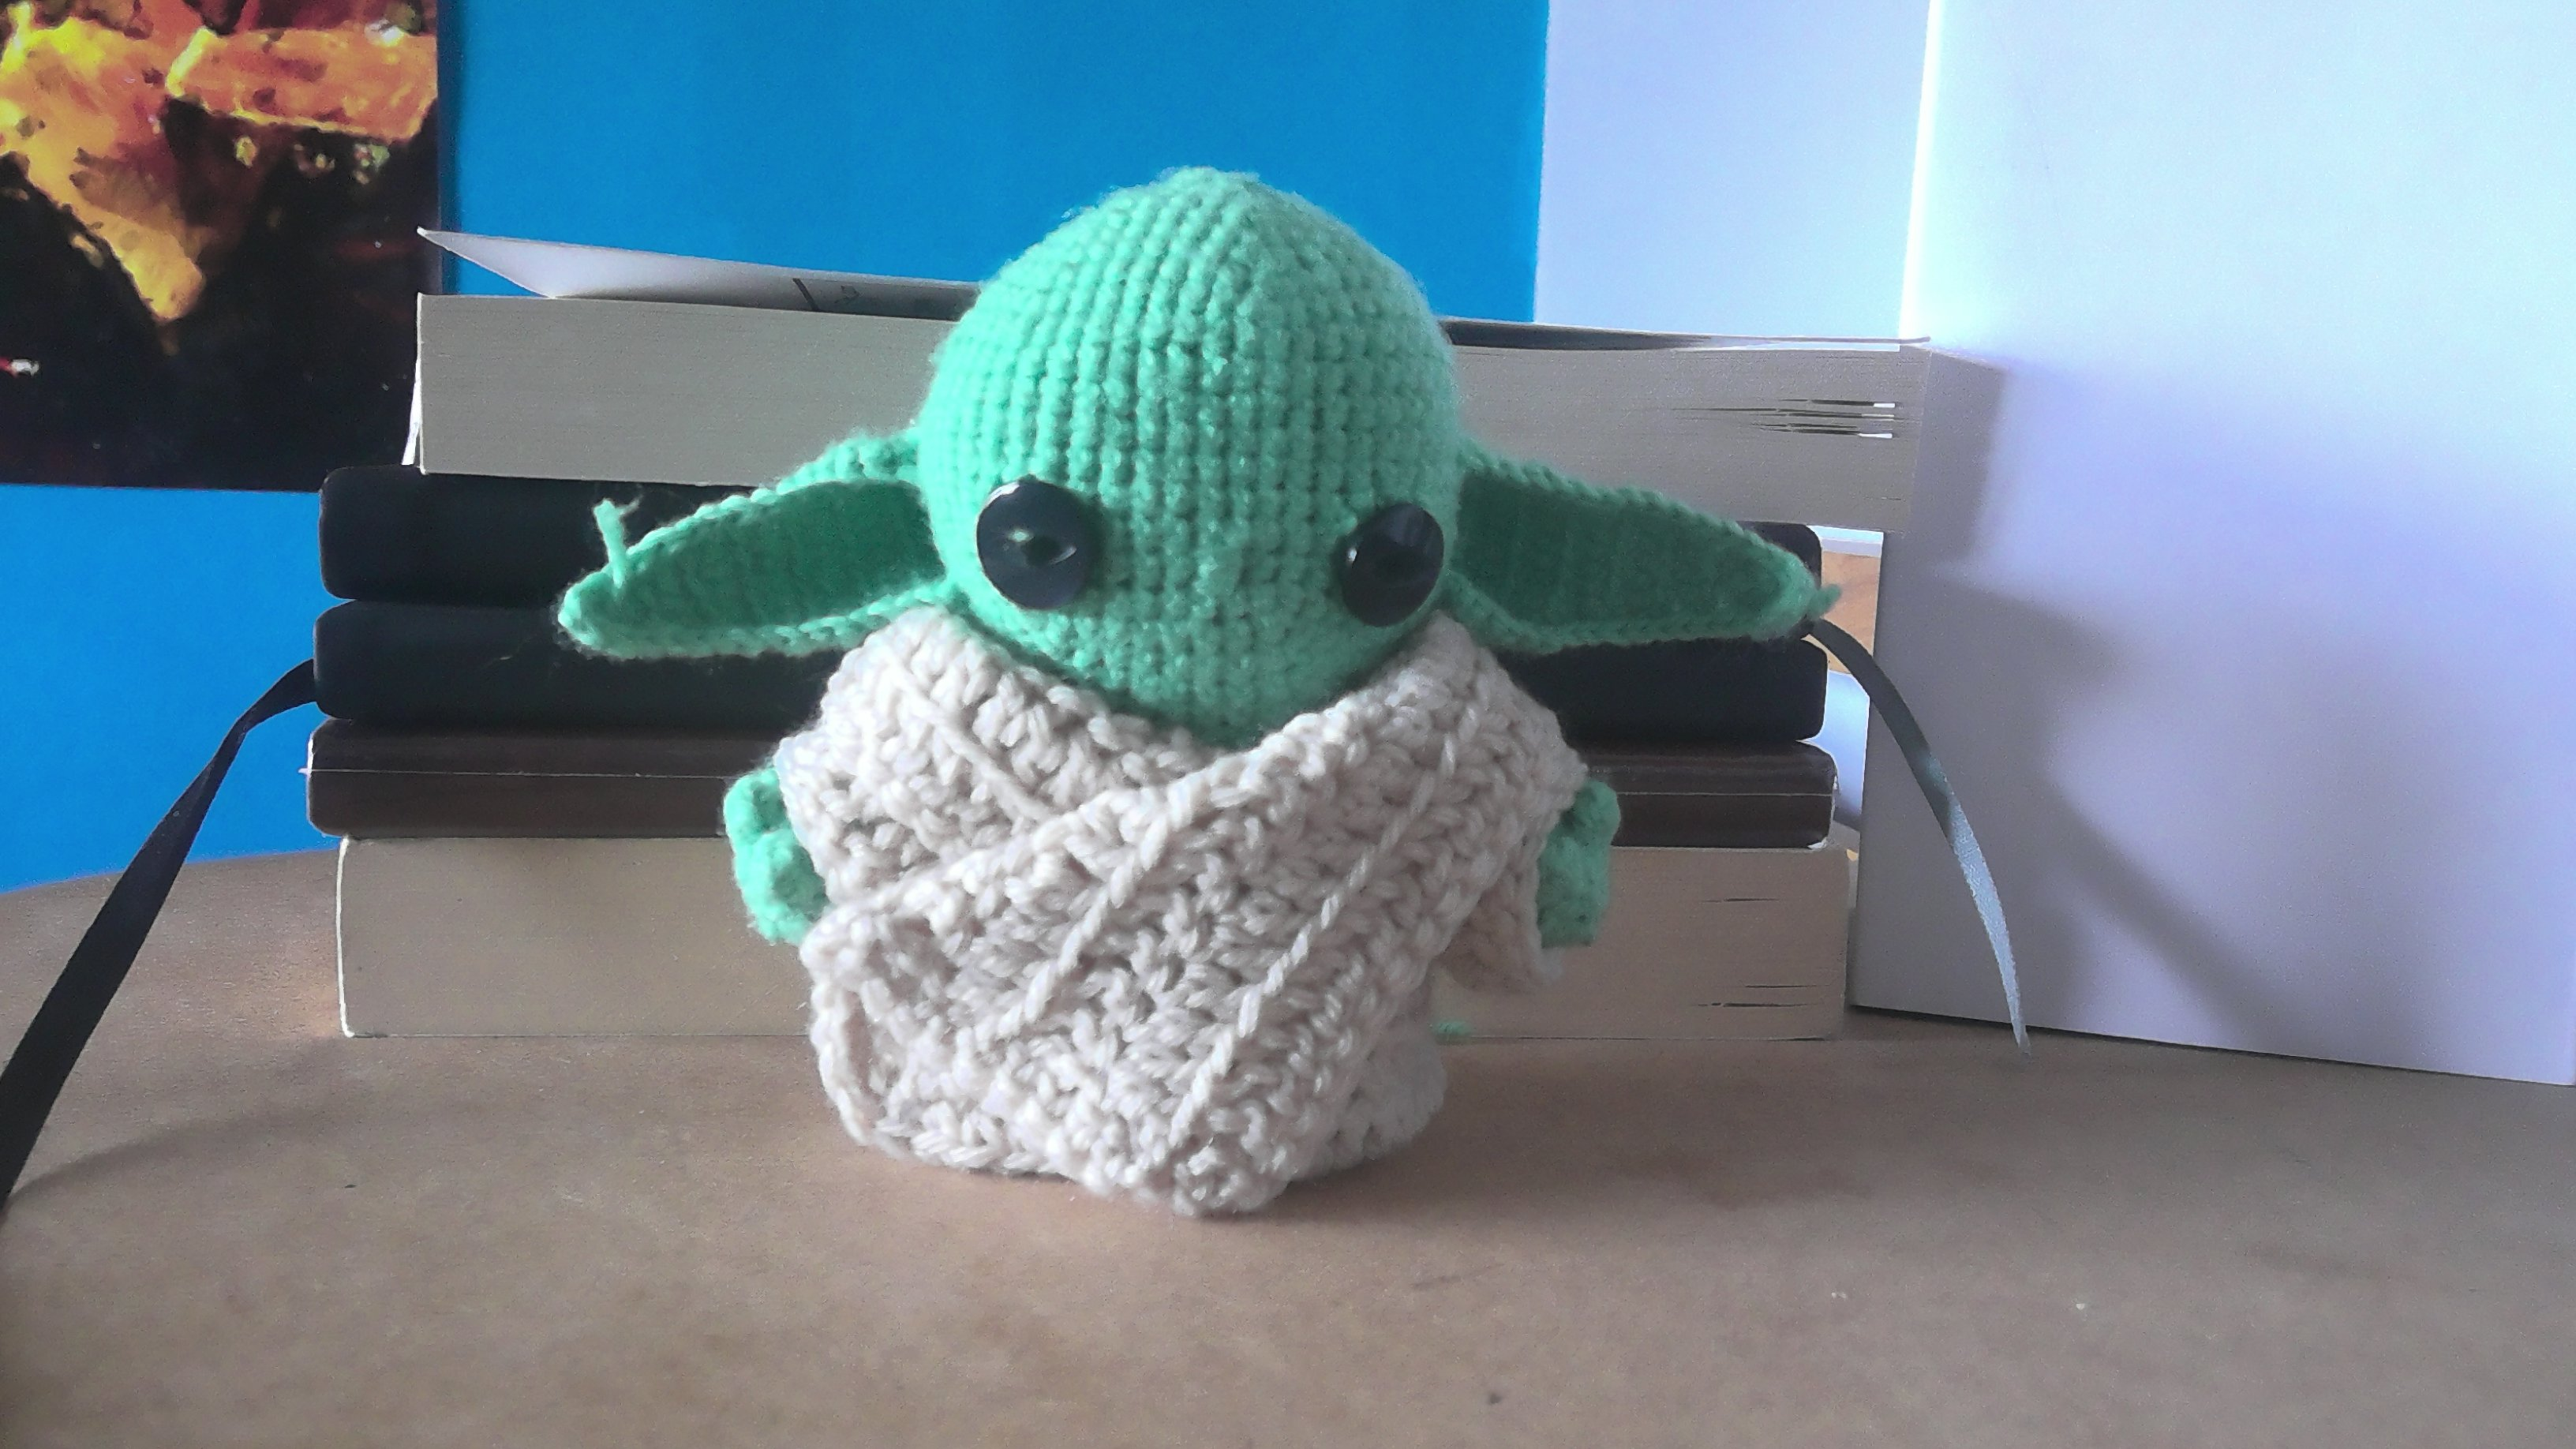 Baby Yoda completed